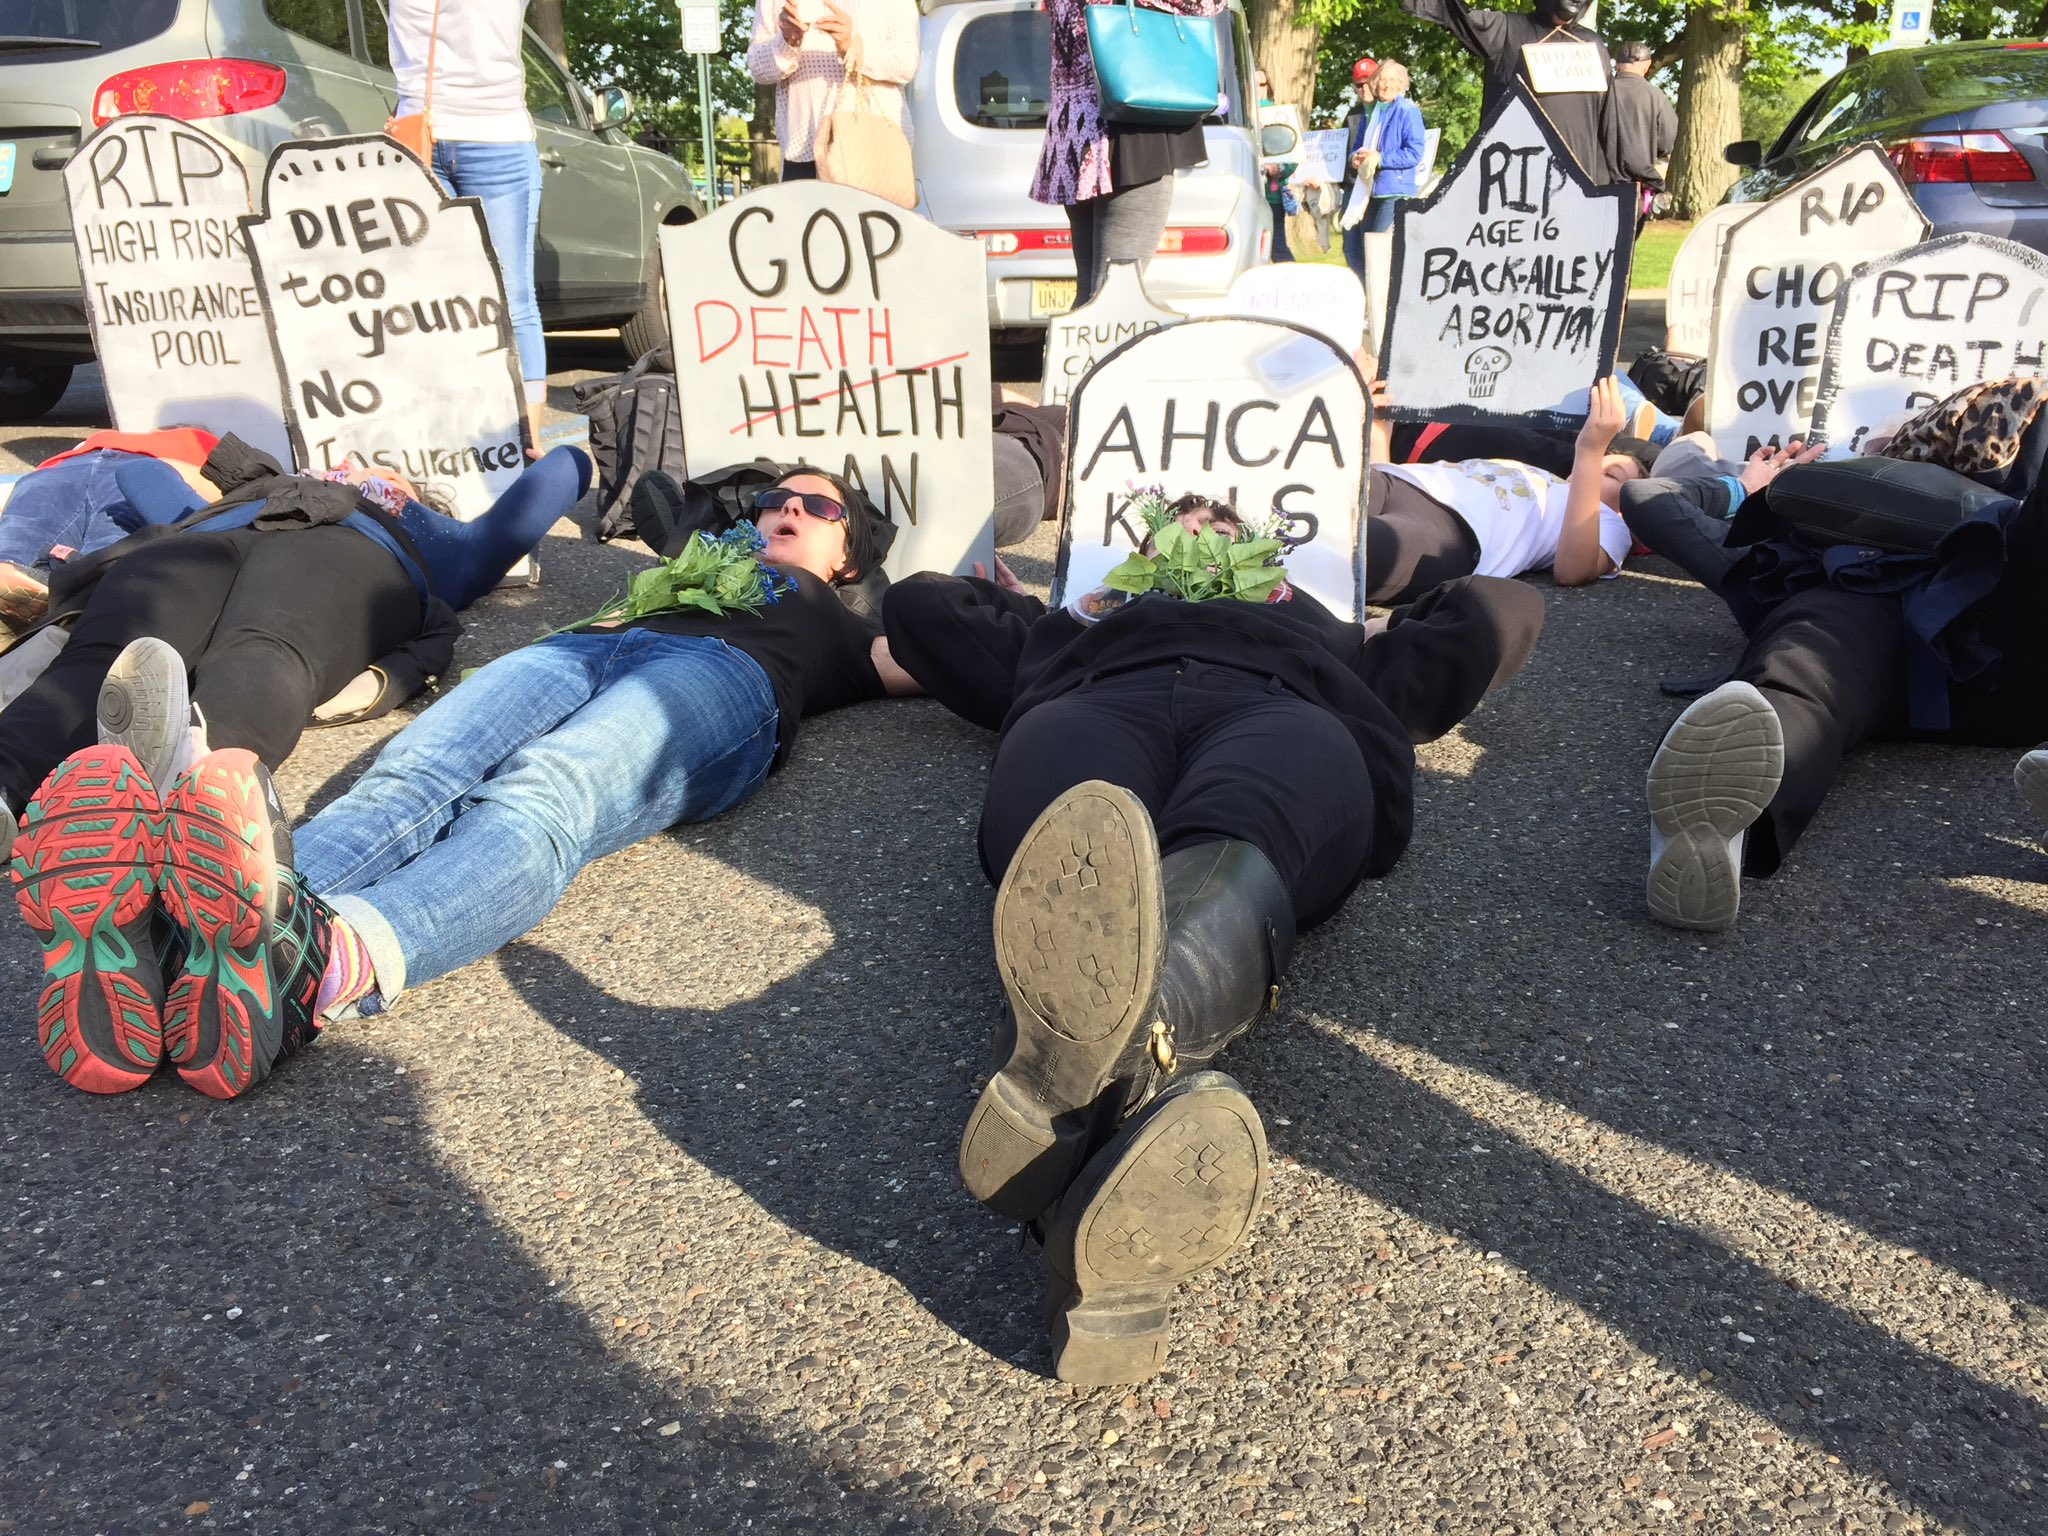 Die-in before MacArthur town hall: 'Red state, blue state, illness doesn't discriminate' https://t.co/reEnPihzeu